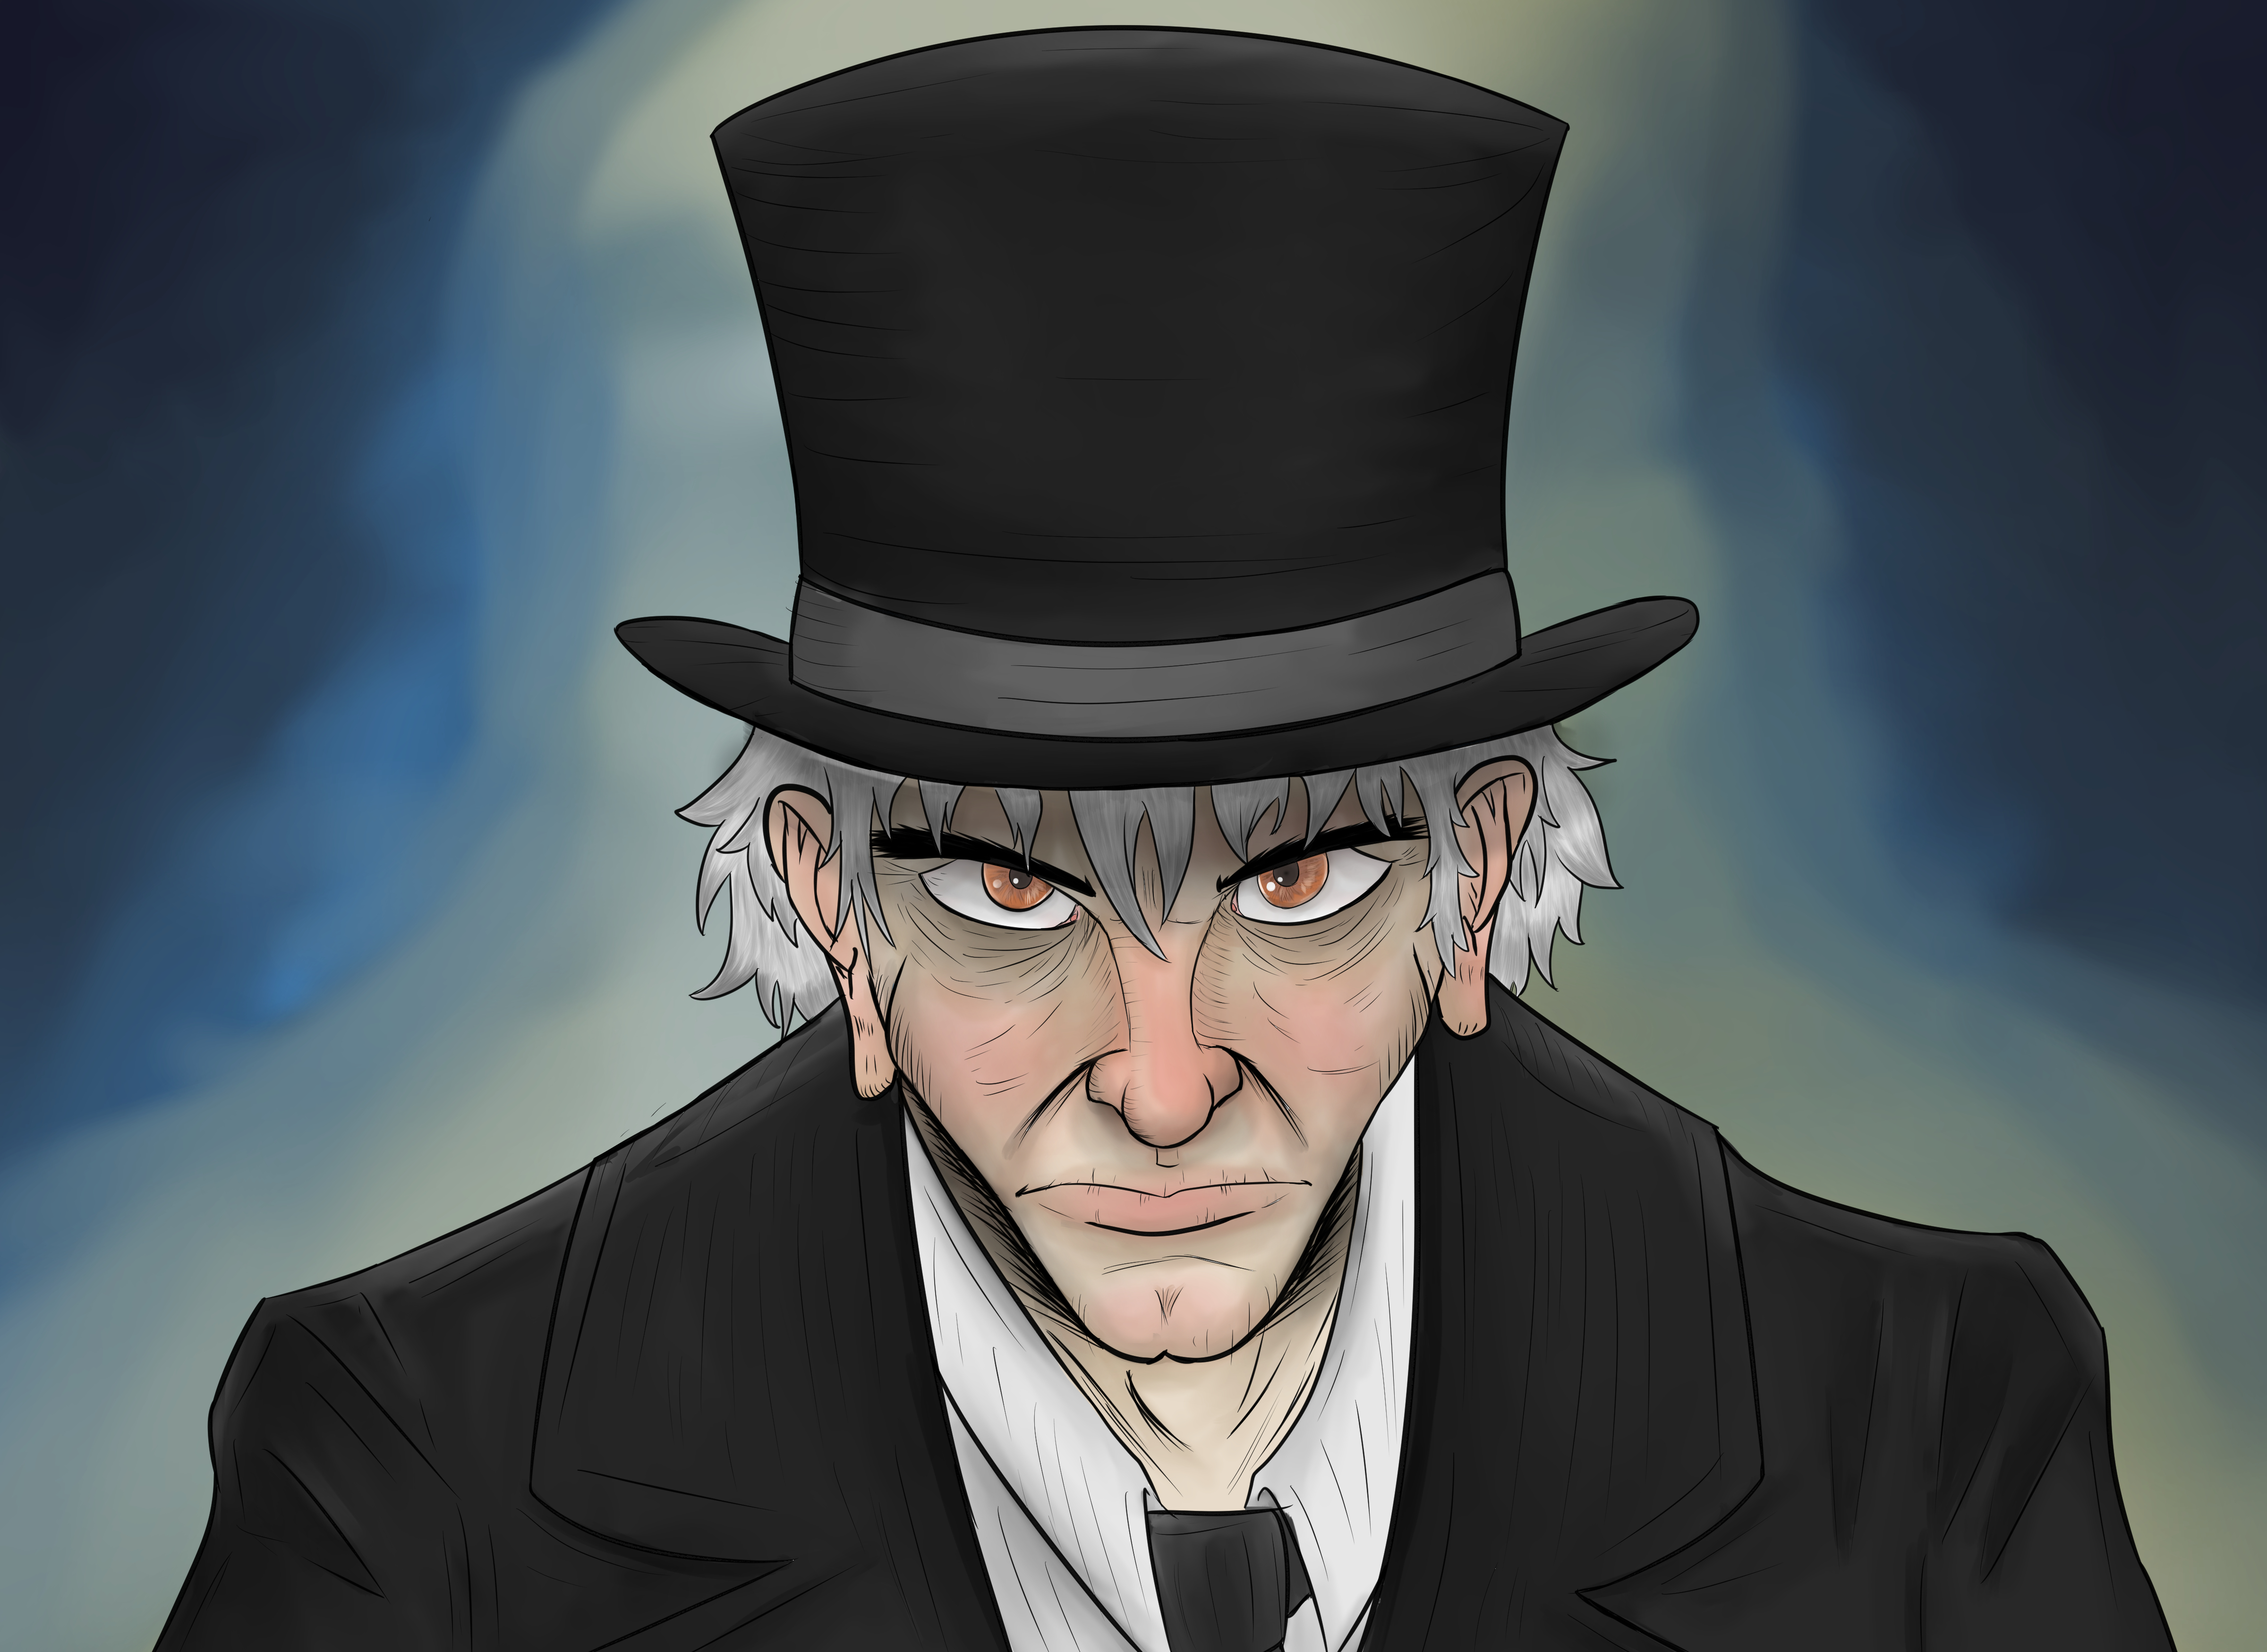 The Scrooge